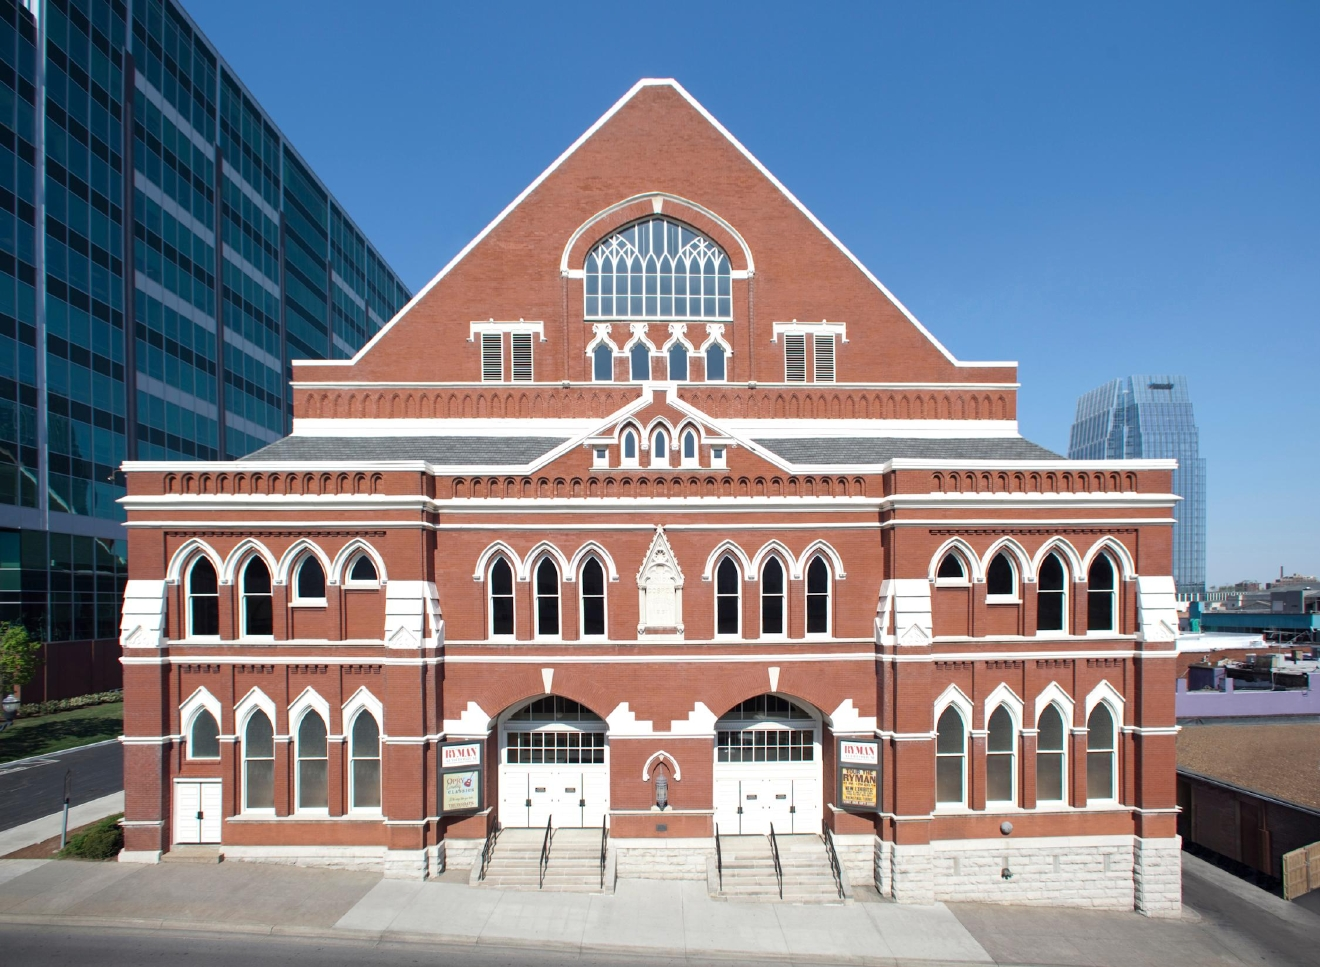 Take a tour of the Ryman Auditorium: One of the most legendary buildings in Nashville, and one of the earliest homes of the Grand Ole Opry, this downtown landmark is not to be missed. (Photo courtesy: Ryman)